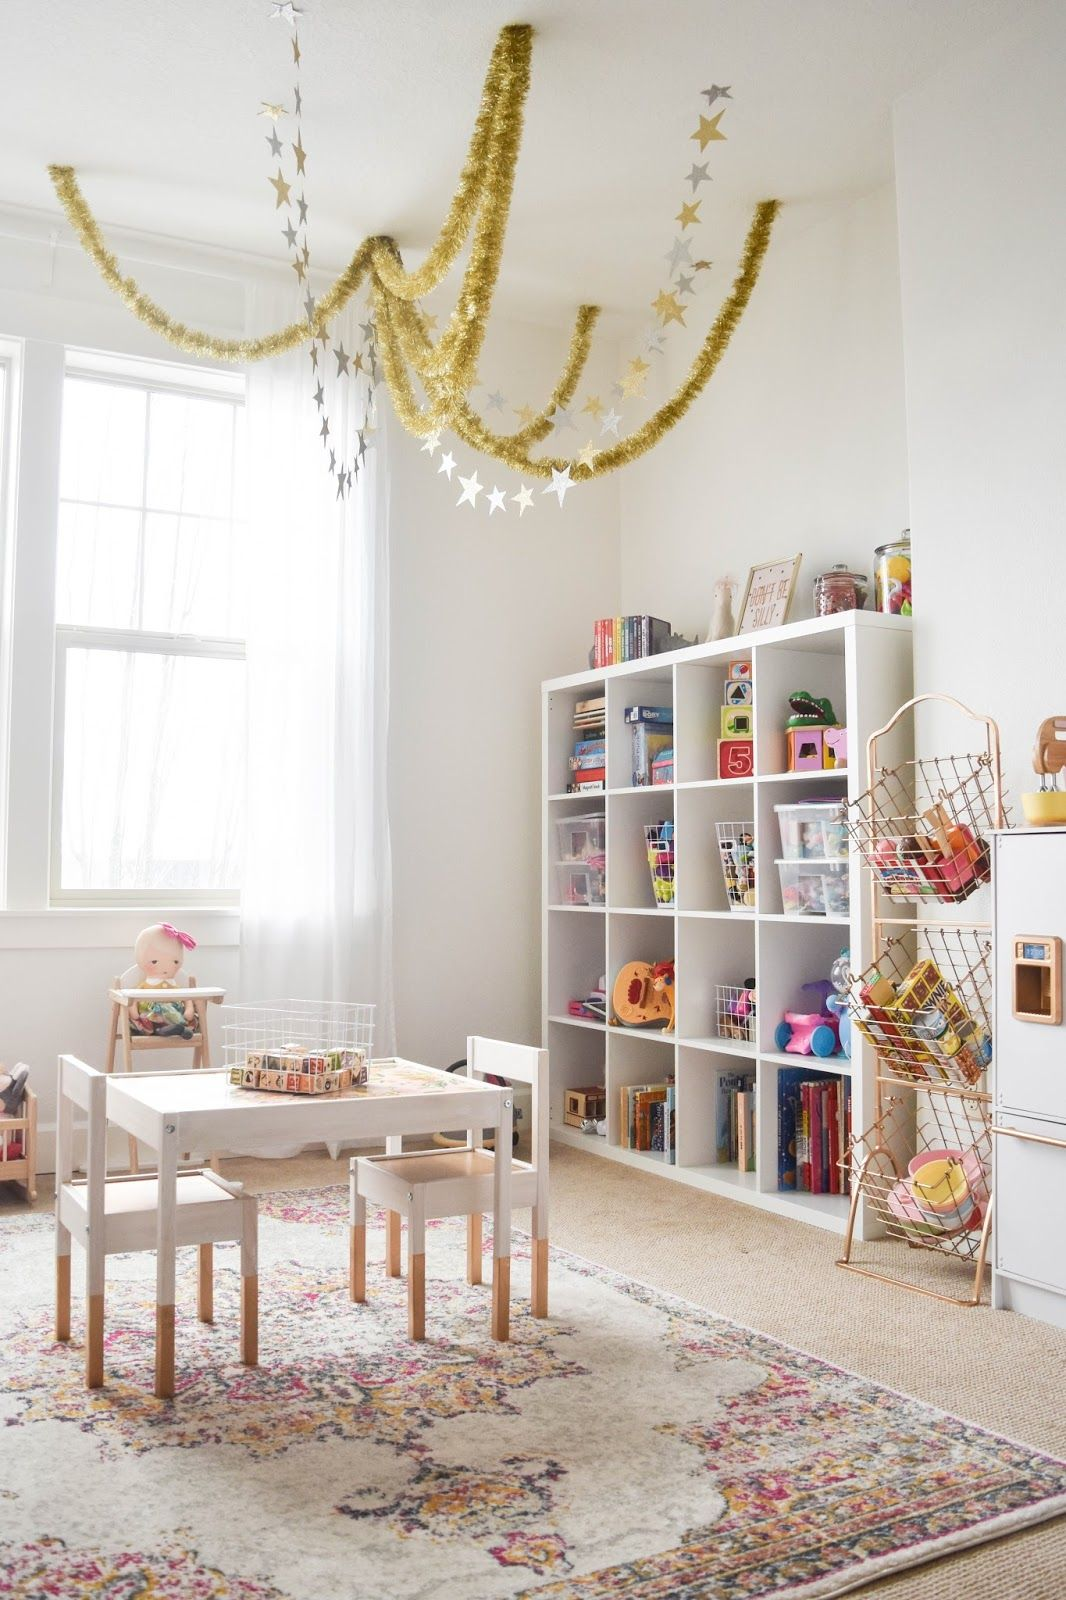 For Christmas We Surprised The Girls With A New Playroom! We